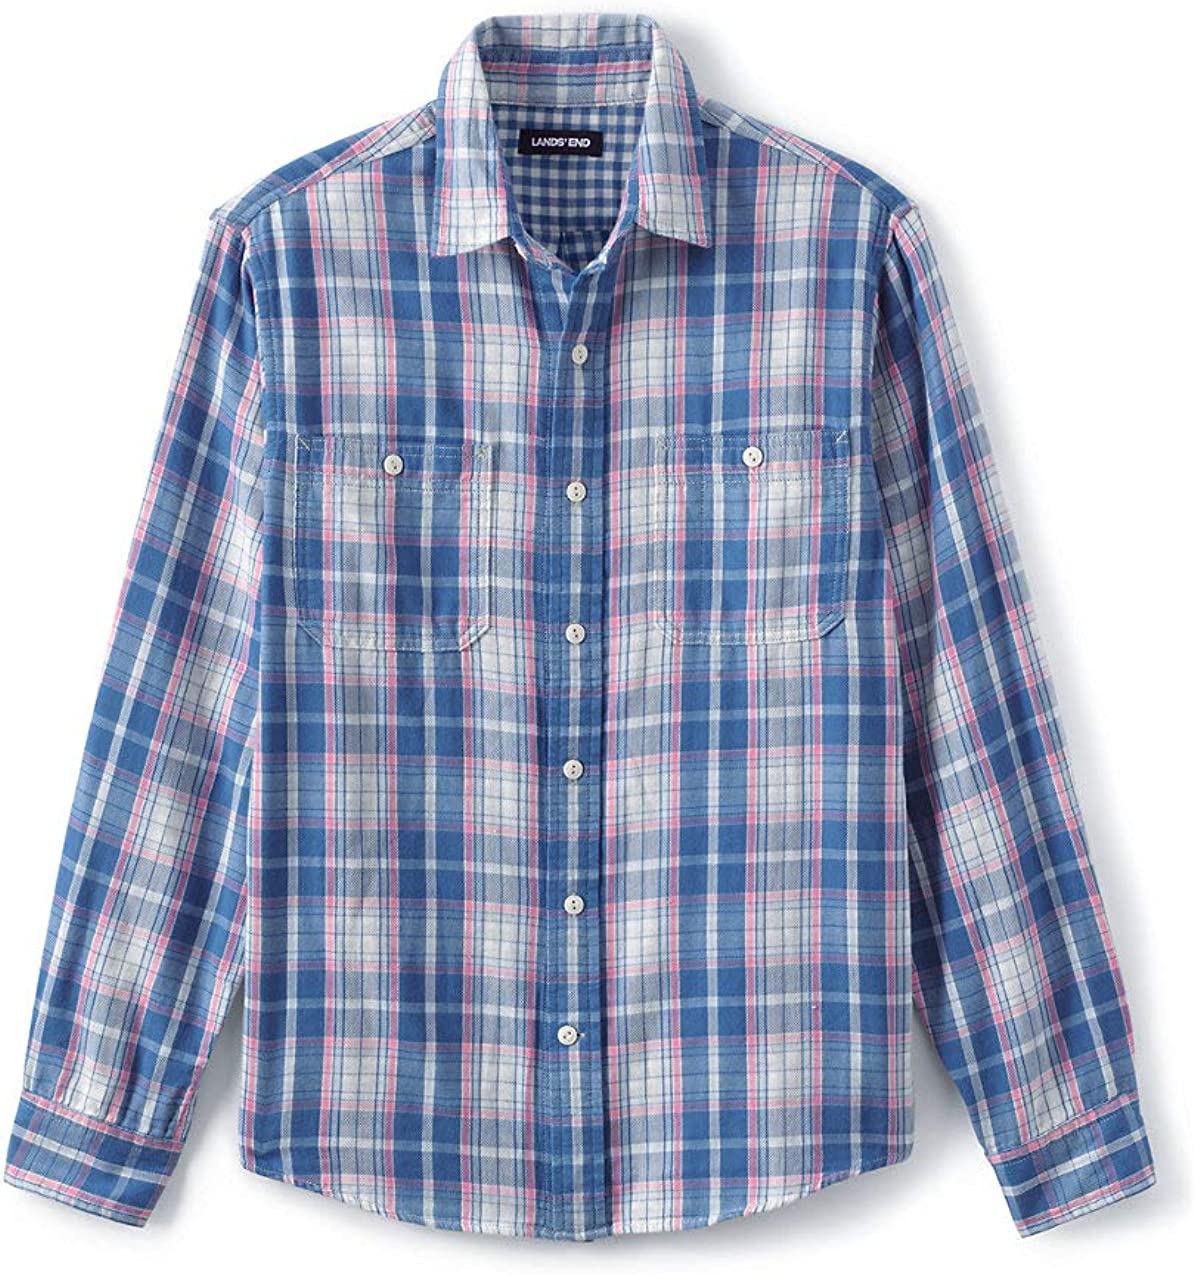 Lands' End Men's Traditional Fit Double Cloth Work Shirt